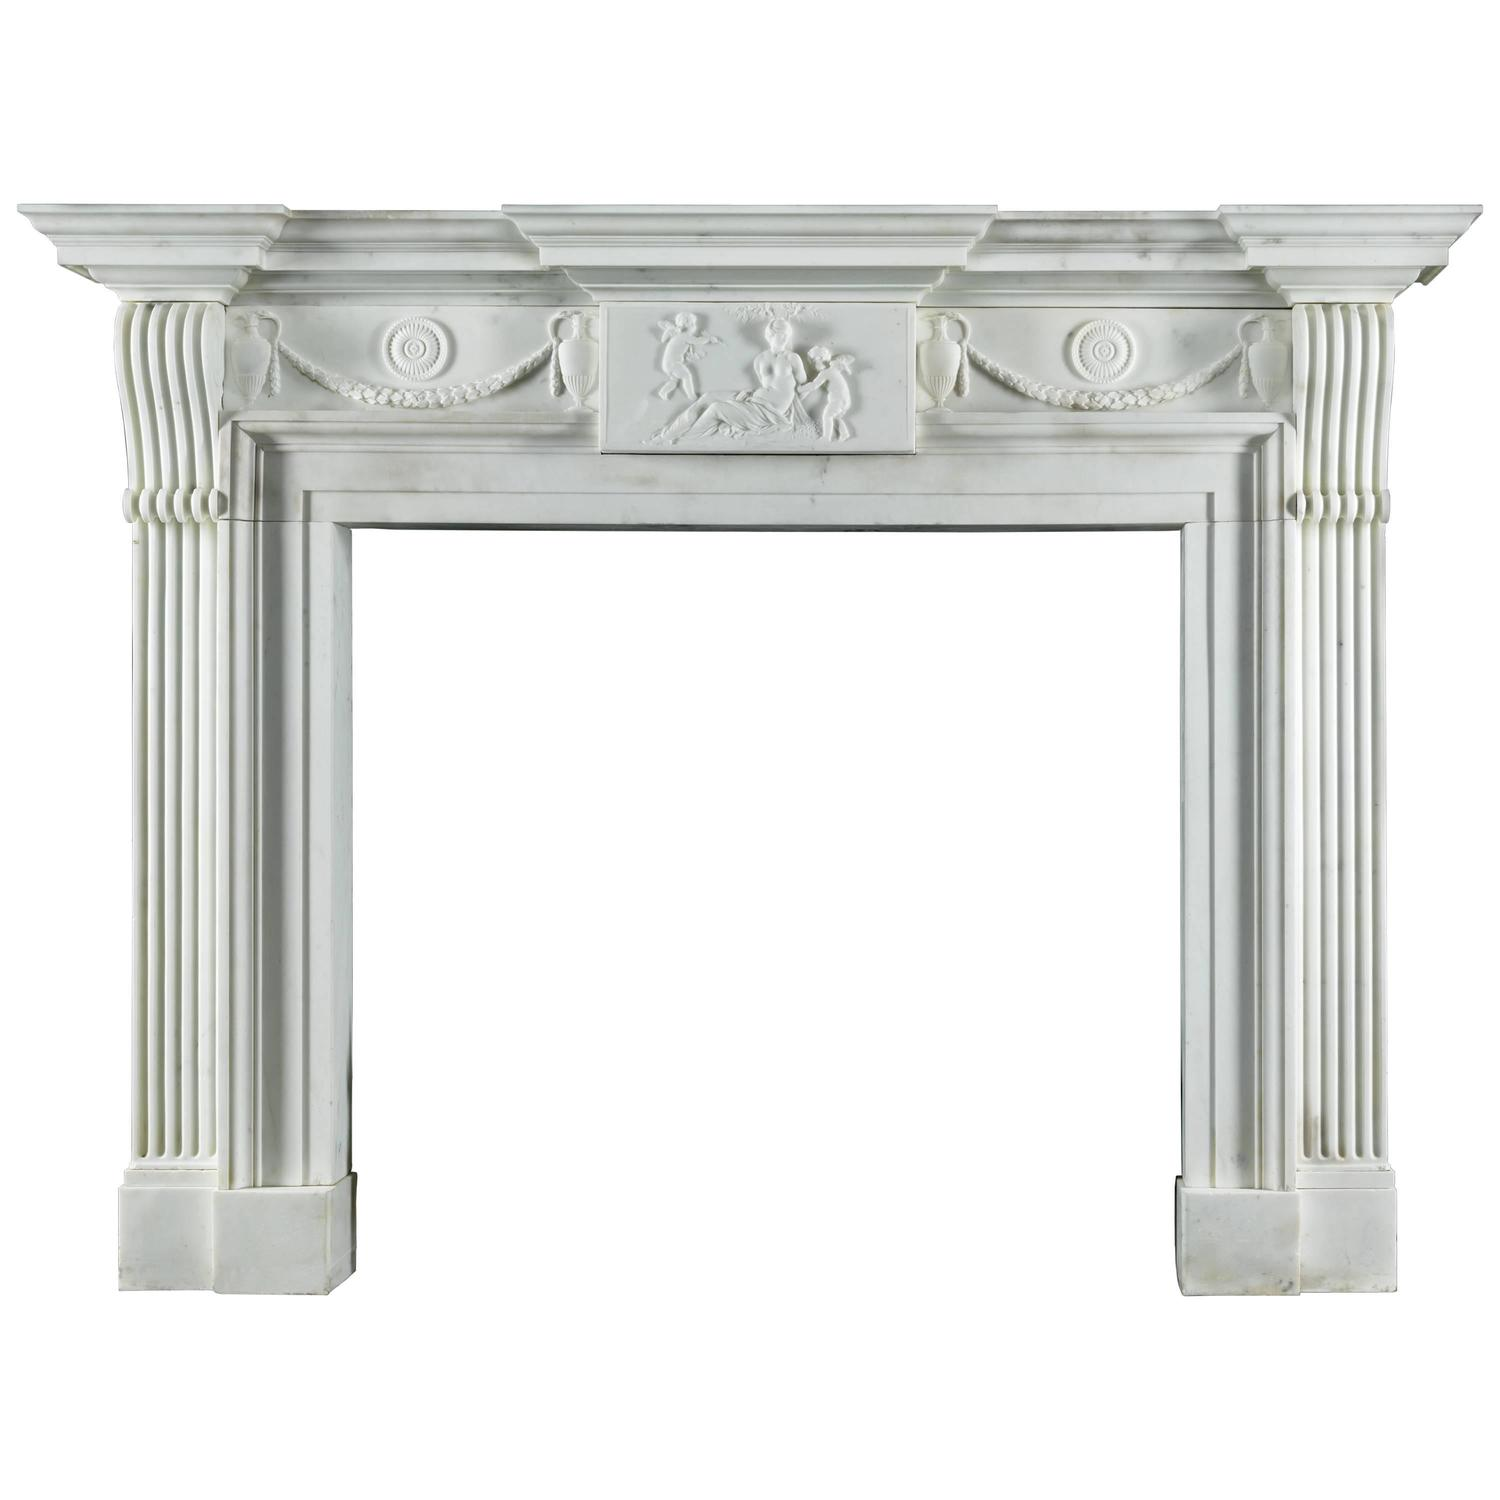 very fine late georgian antique fireplace mantel carved in